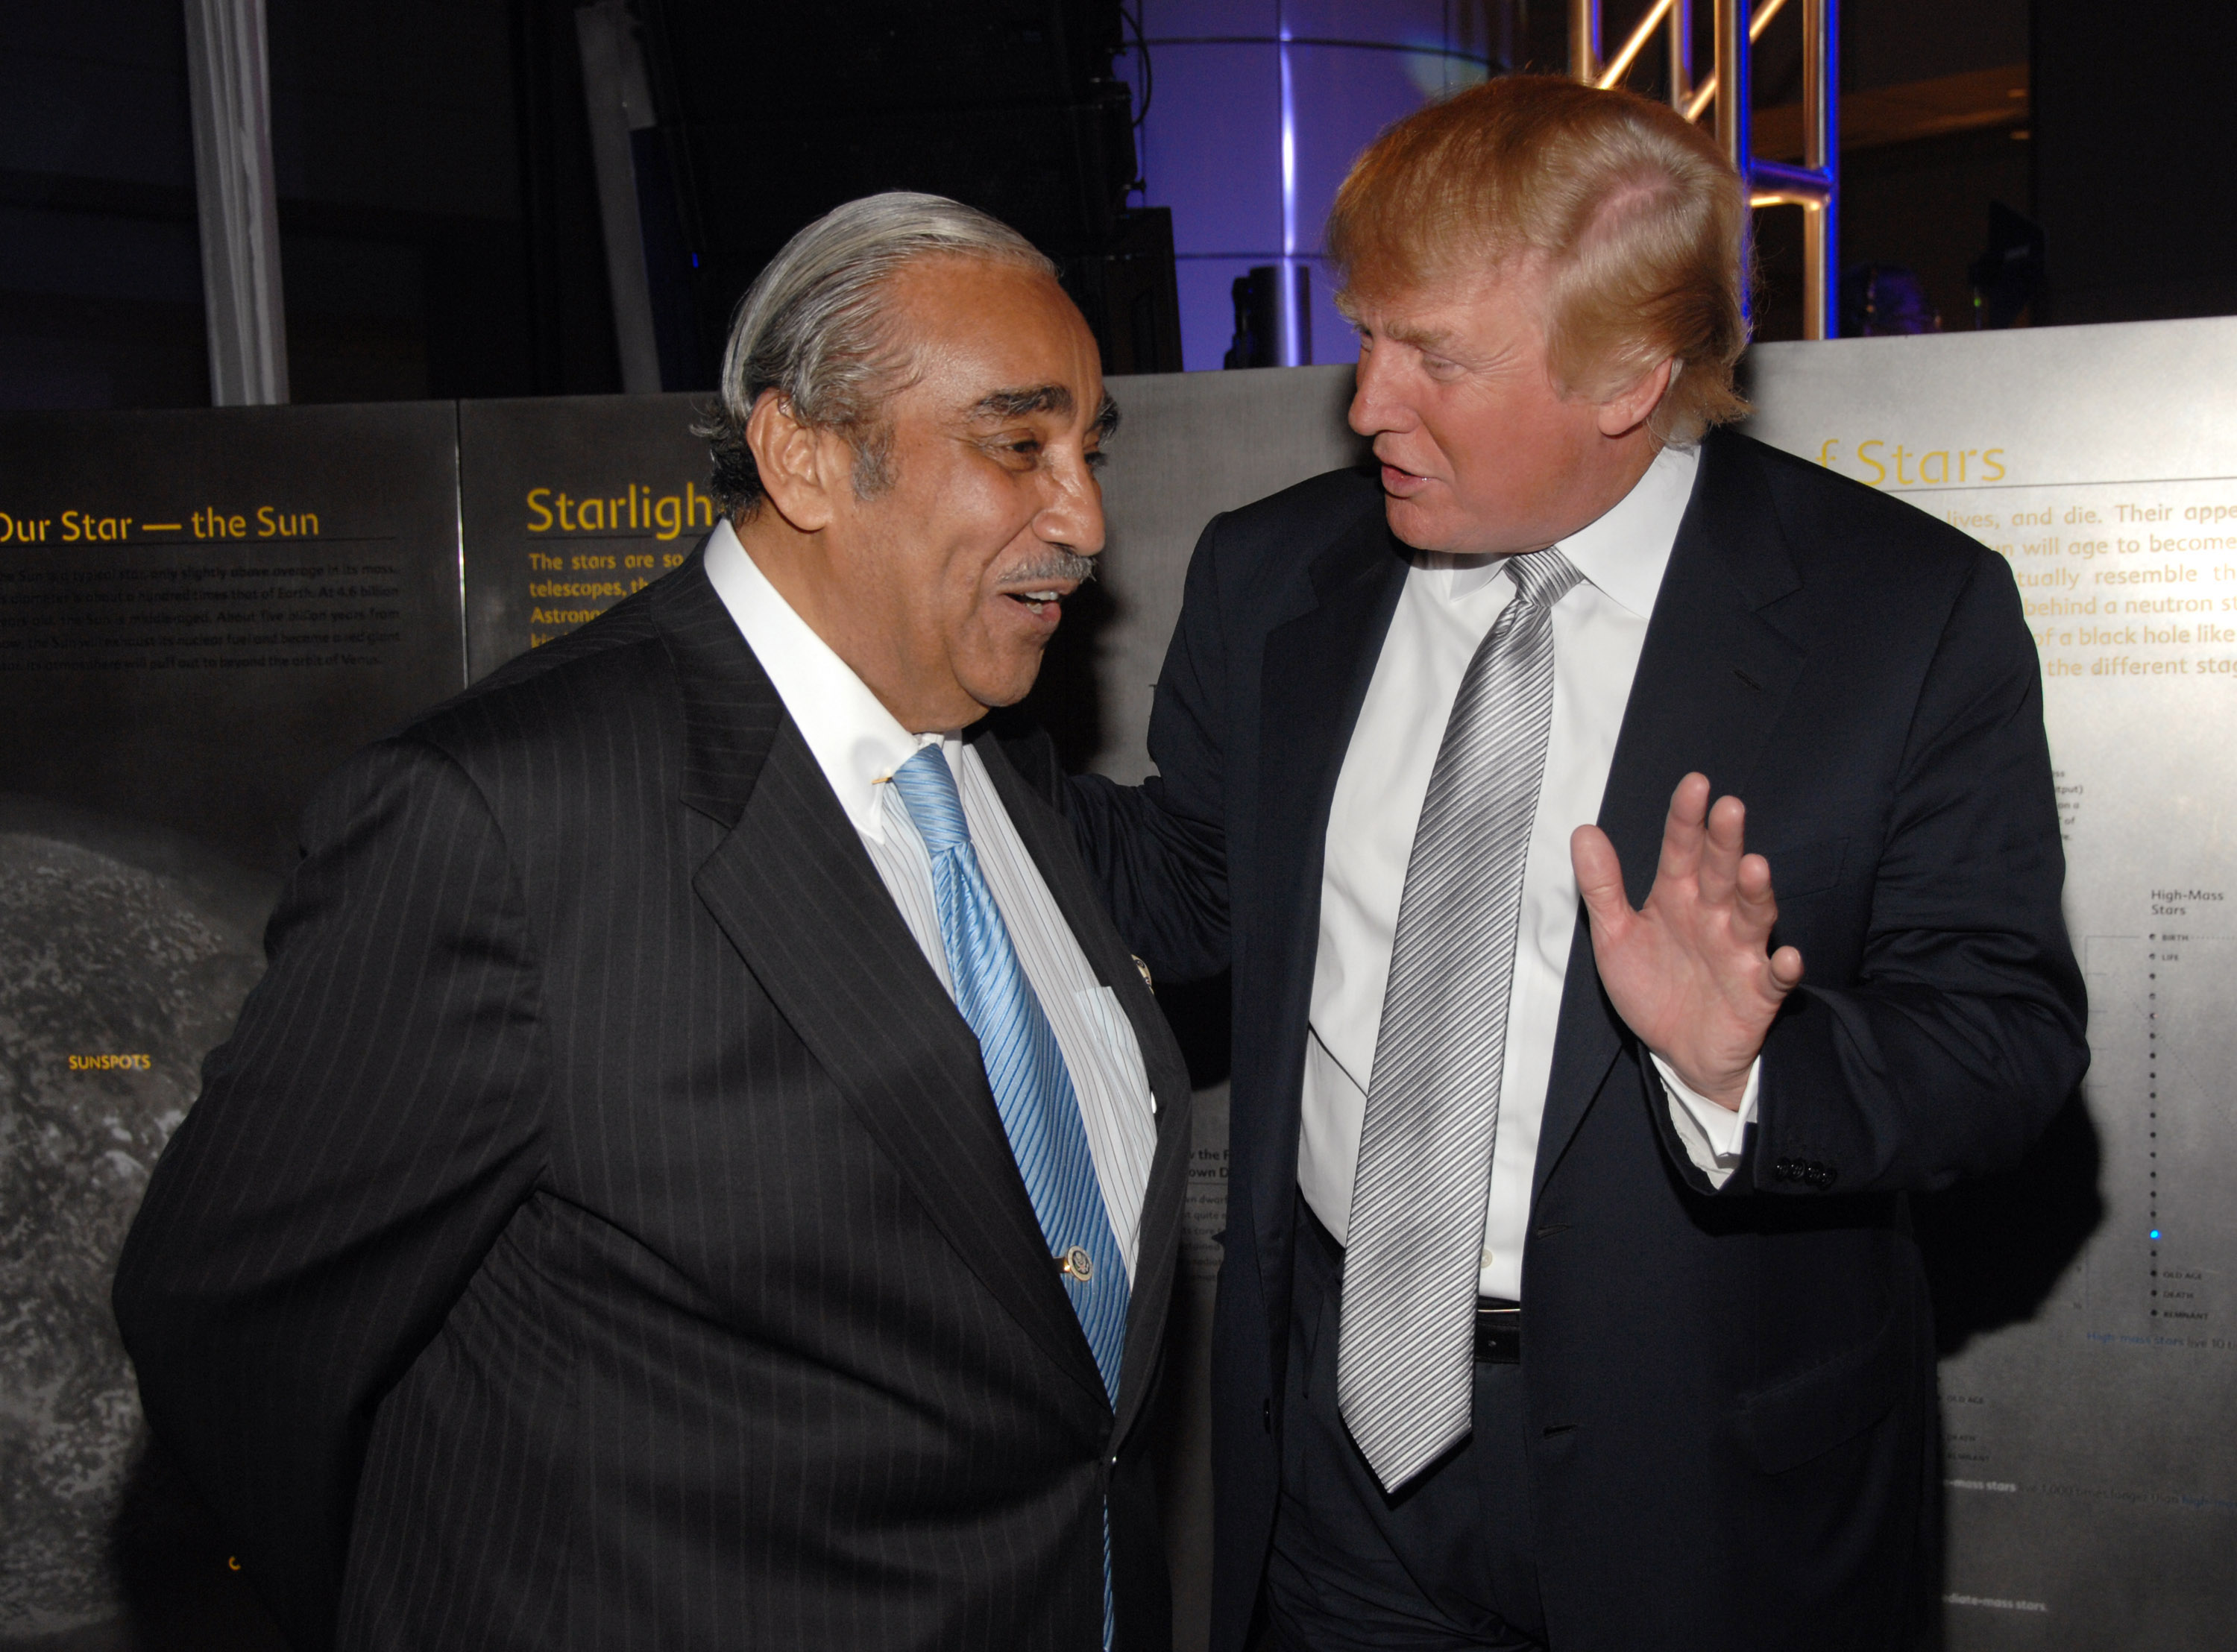 Congressman Charles Rangel and Donald Trump at Tony Bennett's 80th Birthday Party in New York City, August 3, 2006.